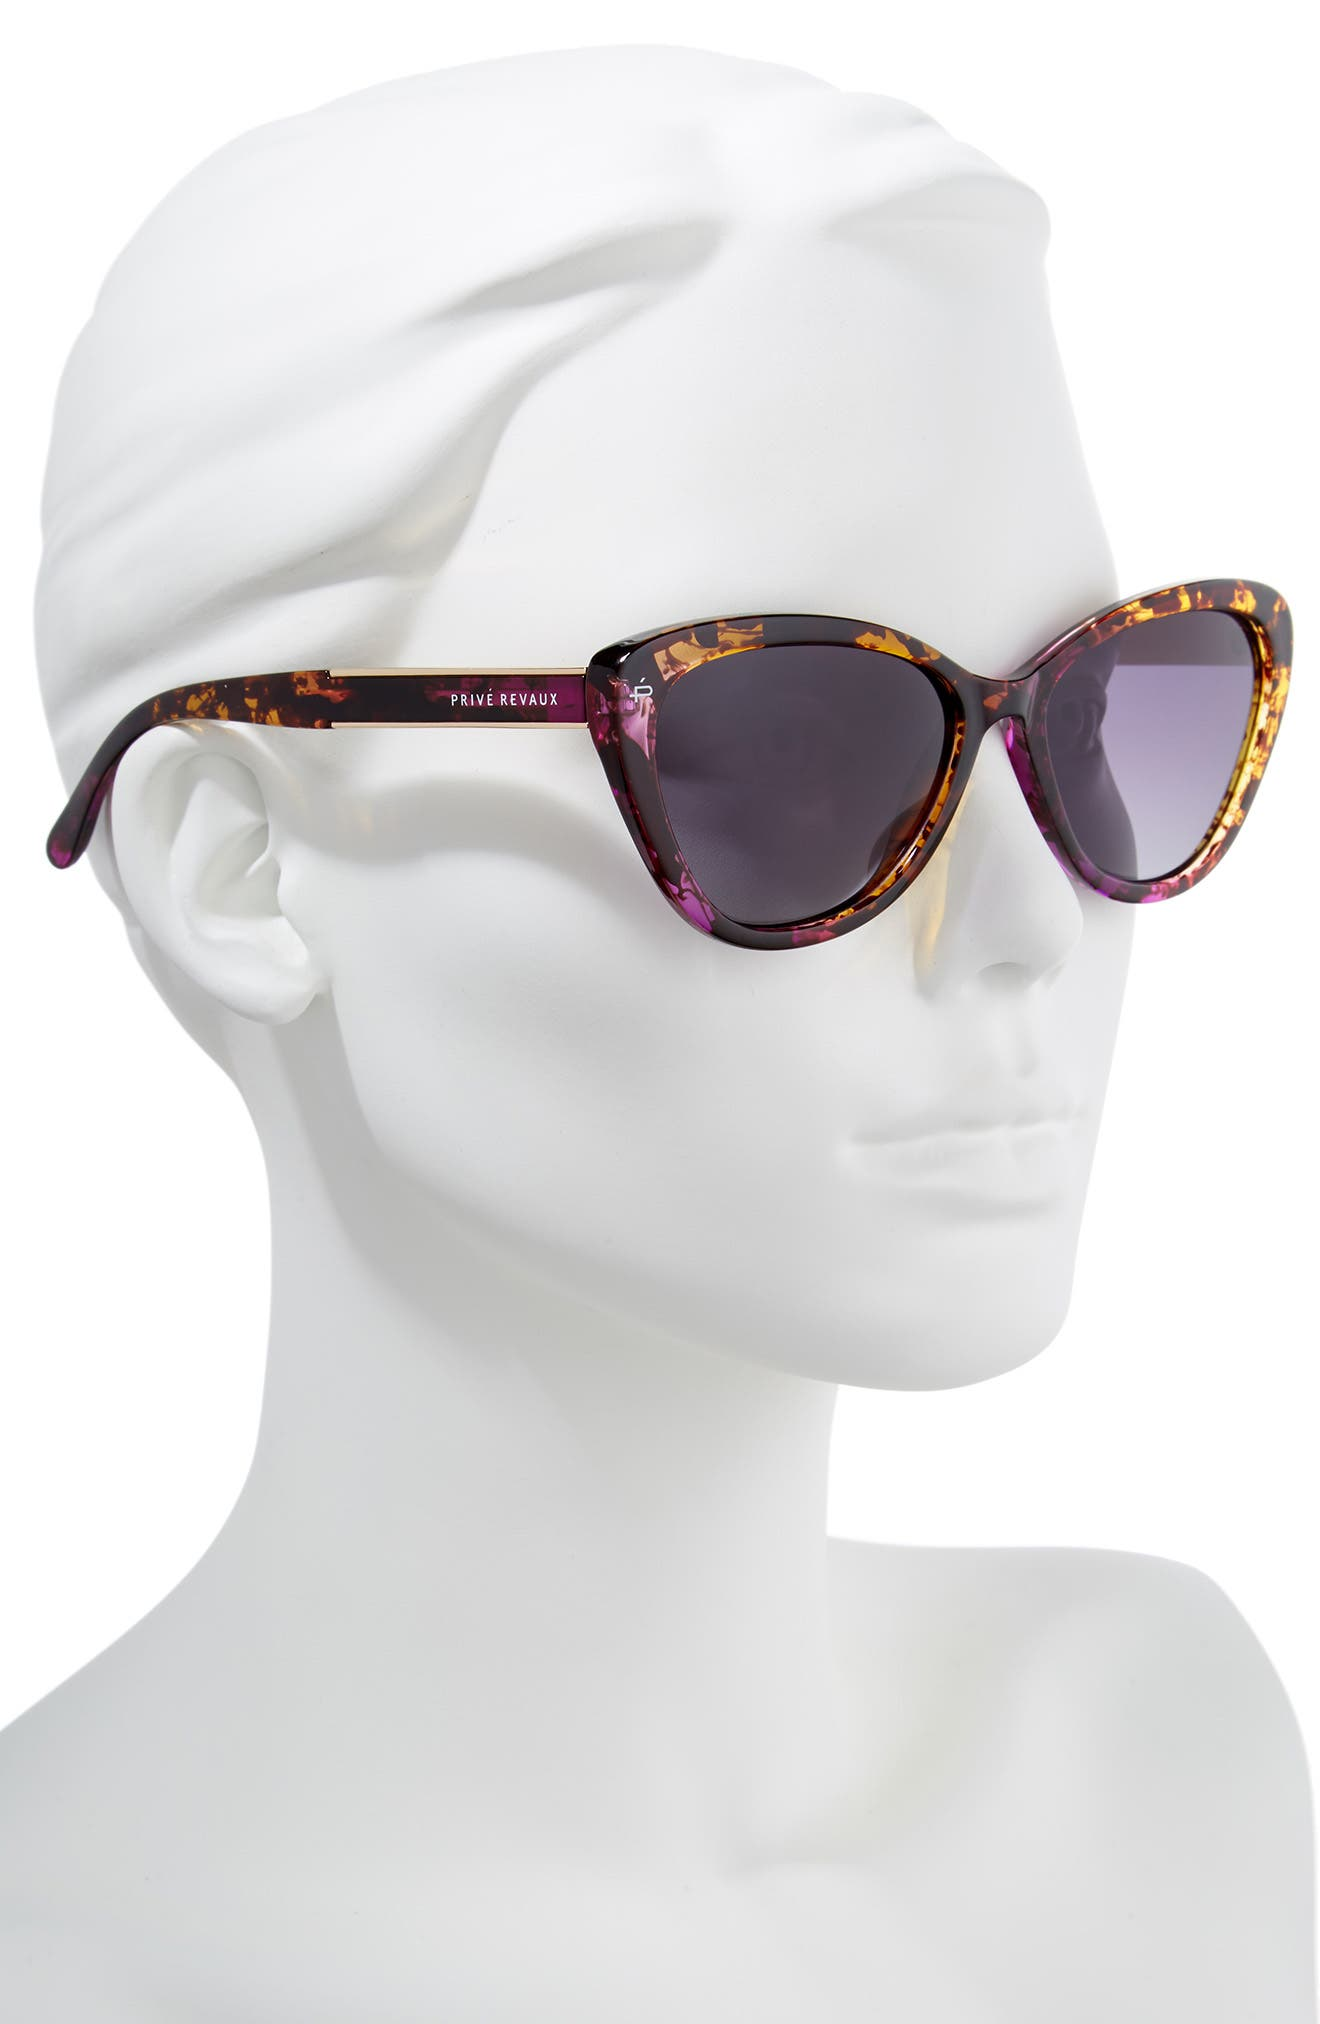 Privé Revaux The Hepburn 56mm Cat Eye Sunglasses,                             Alternate thumbnail 2, color,                             Purple